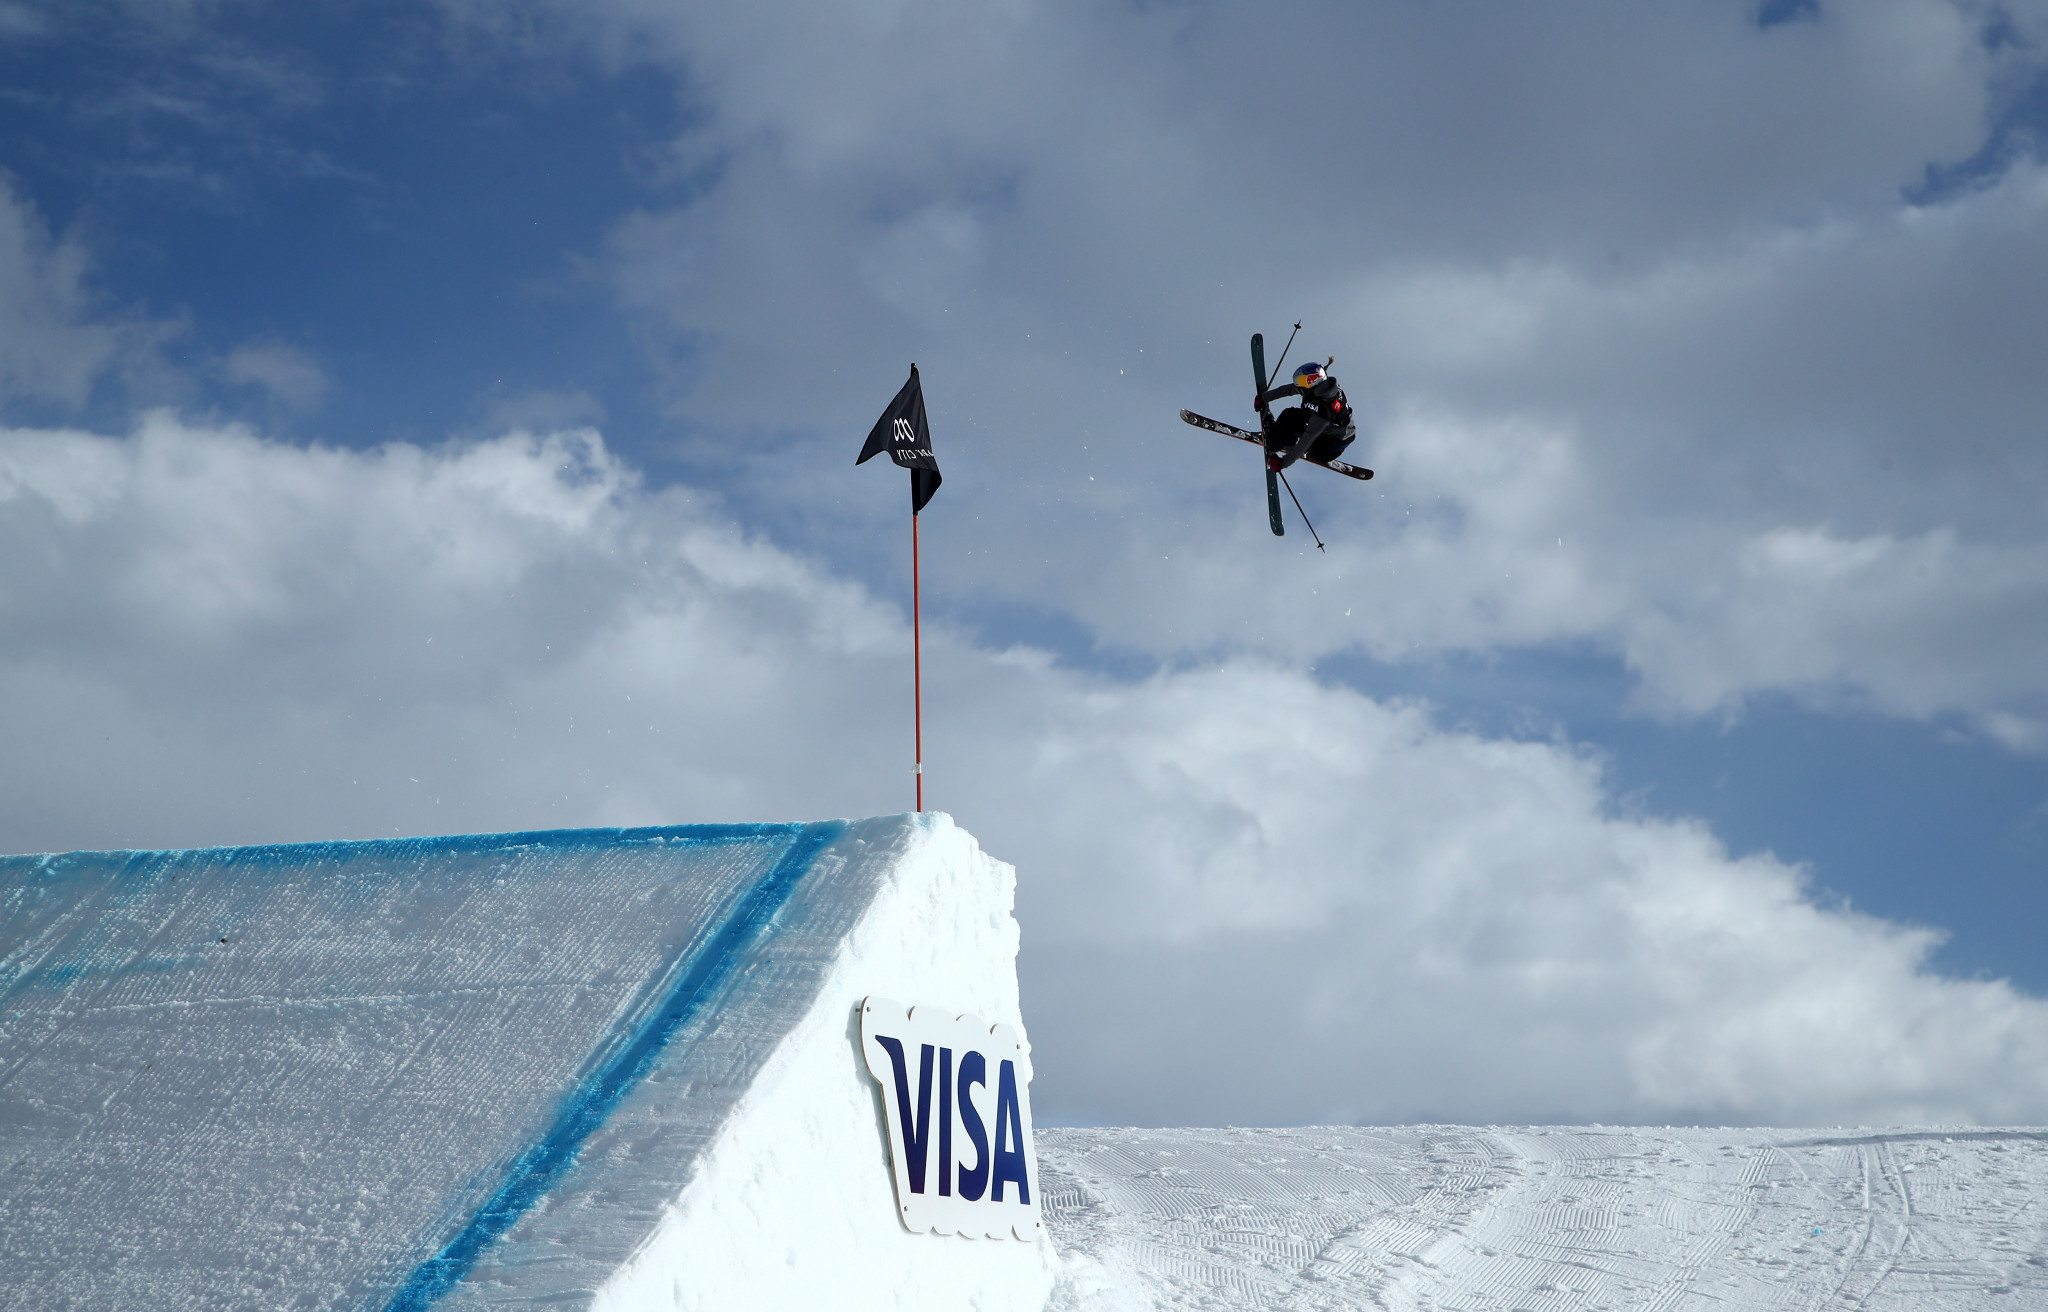 World champion Ledeux delights home crowd at FIS Freeski Slopestyle World Cup